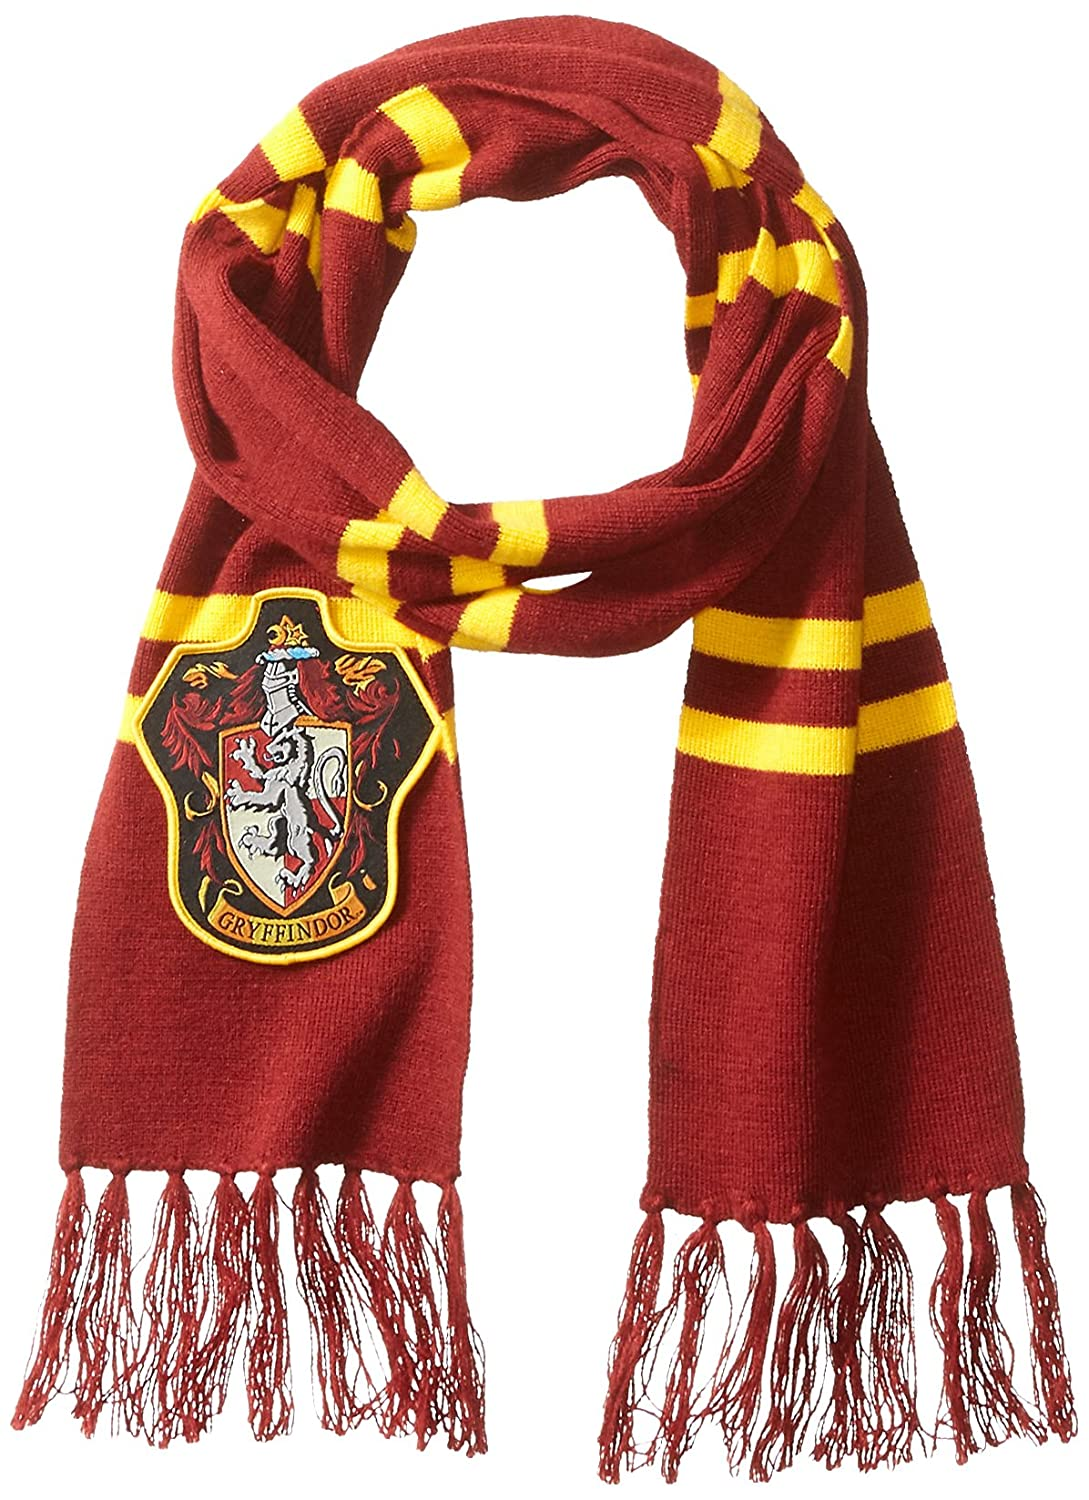 Amazon.com: Harry Potter Gryffindor Patch Knit Scarf: Clothing